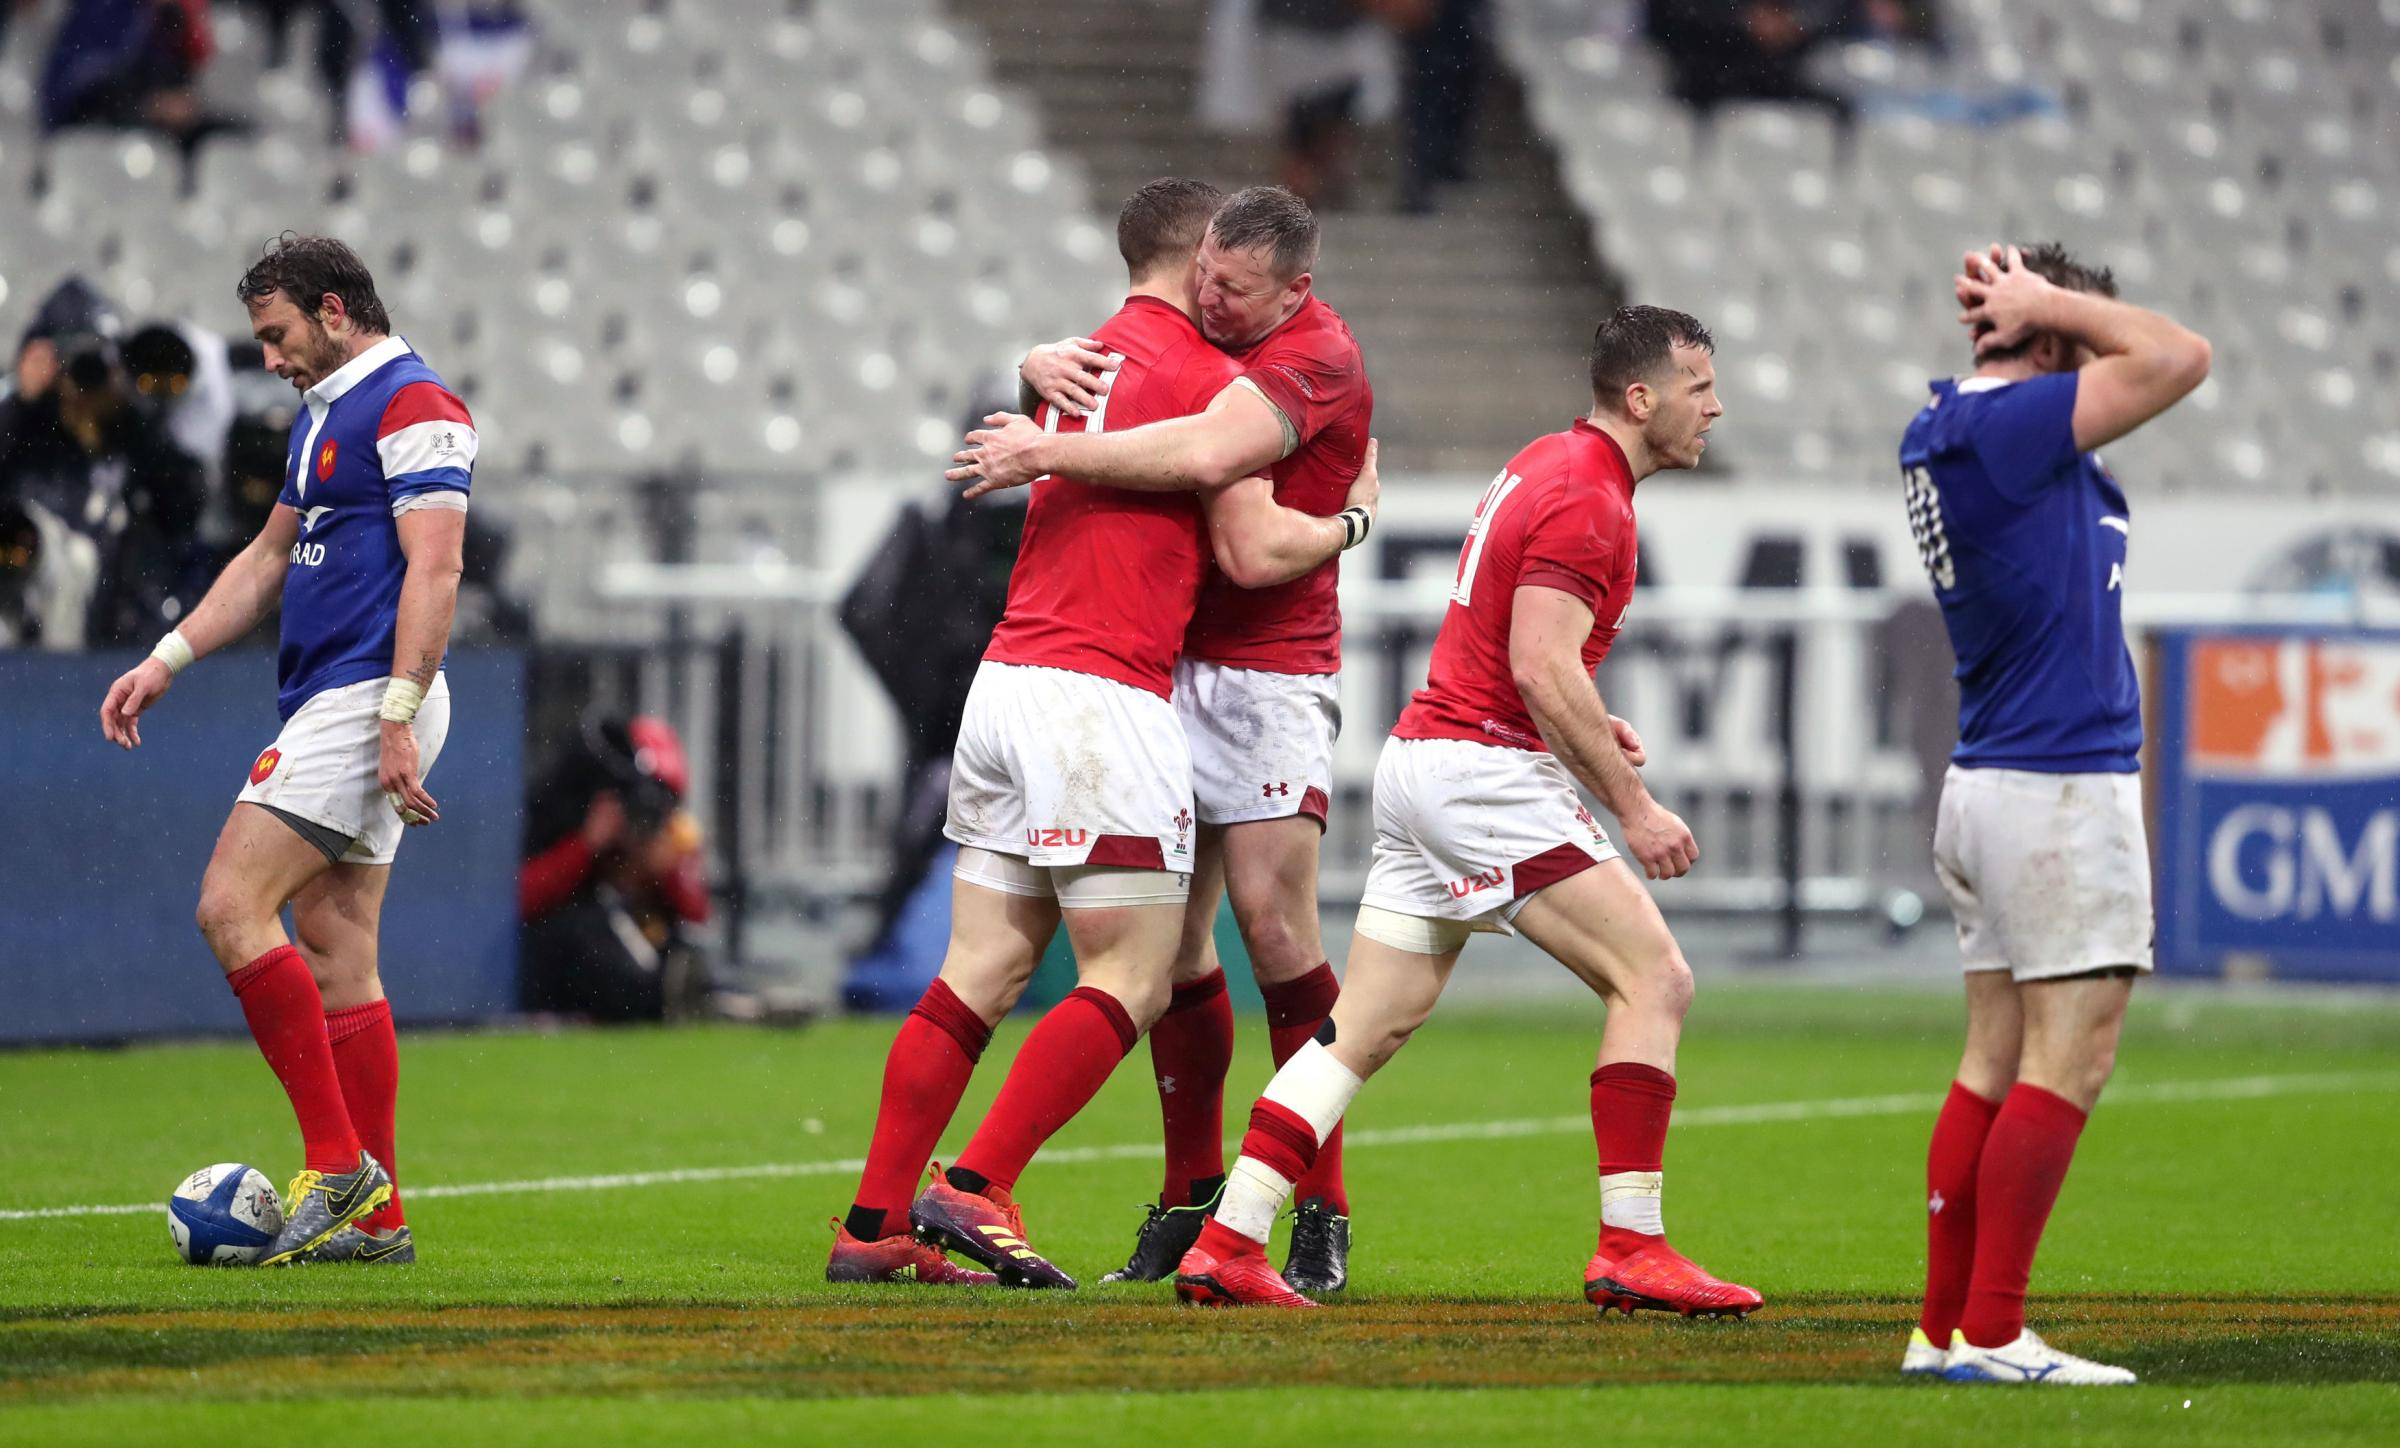 France 19 Wales 24